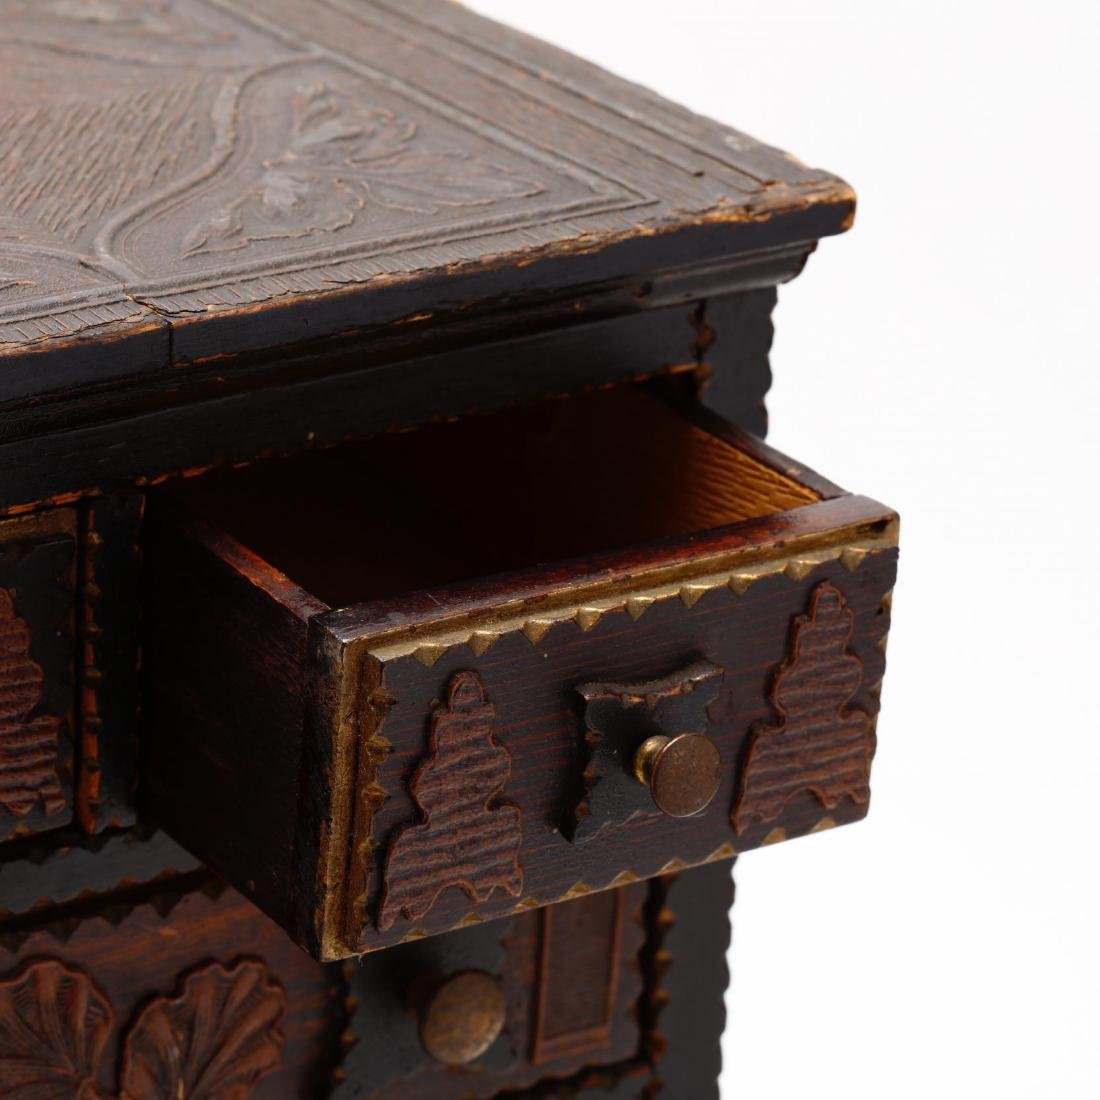 Two Vintage Tramp Art Miniature Chests of Drawers - 3